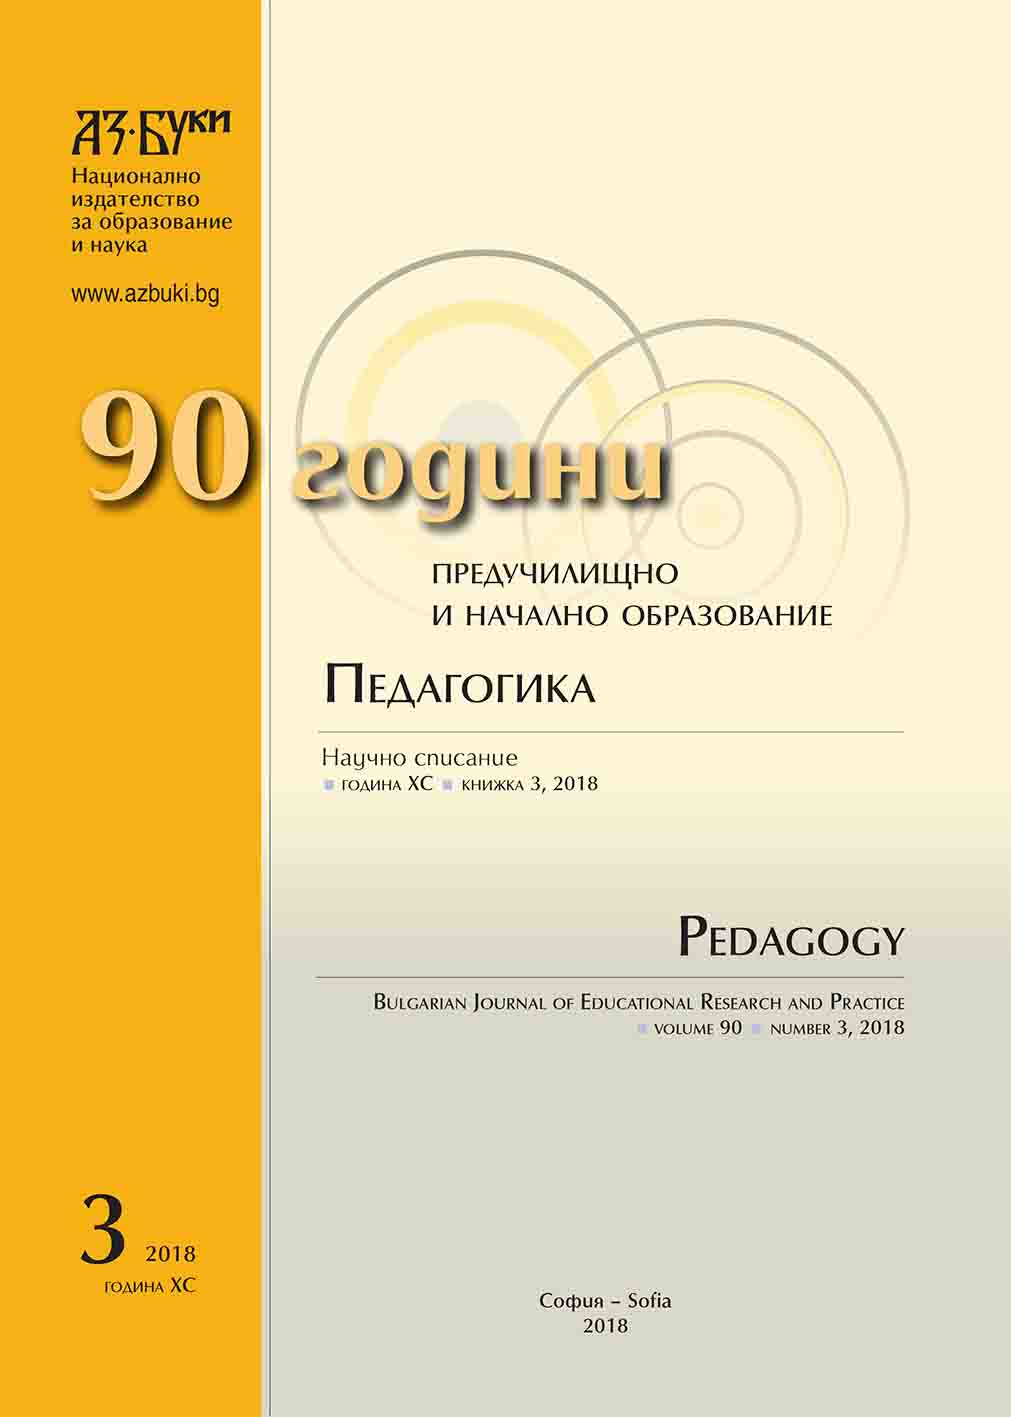 Bulgarian Vocational Education in Non-Formal and/or Formal Invariably Perspectives Cover Image